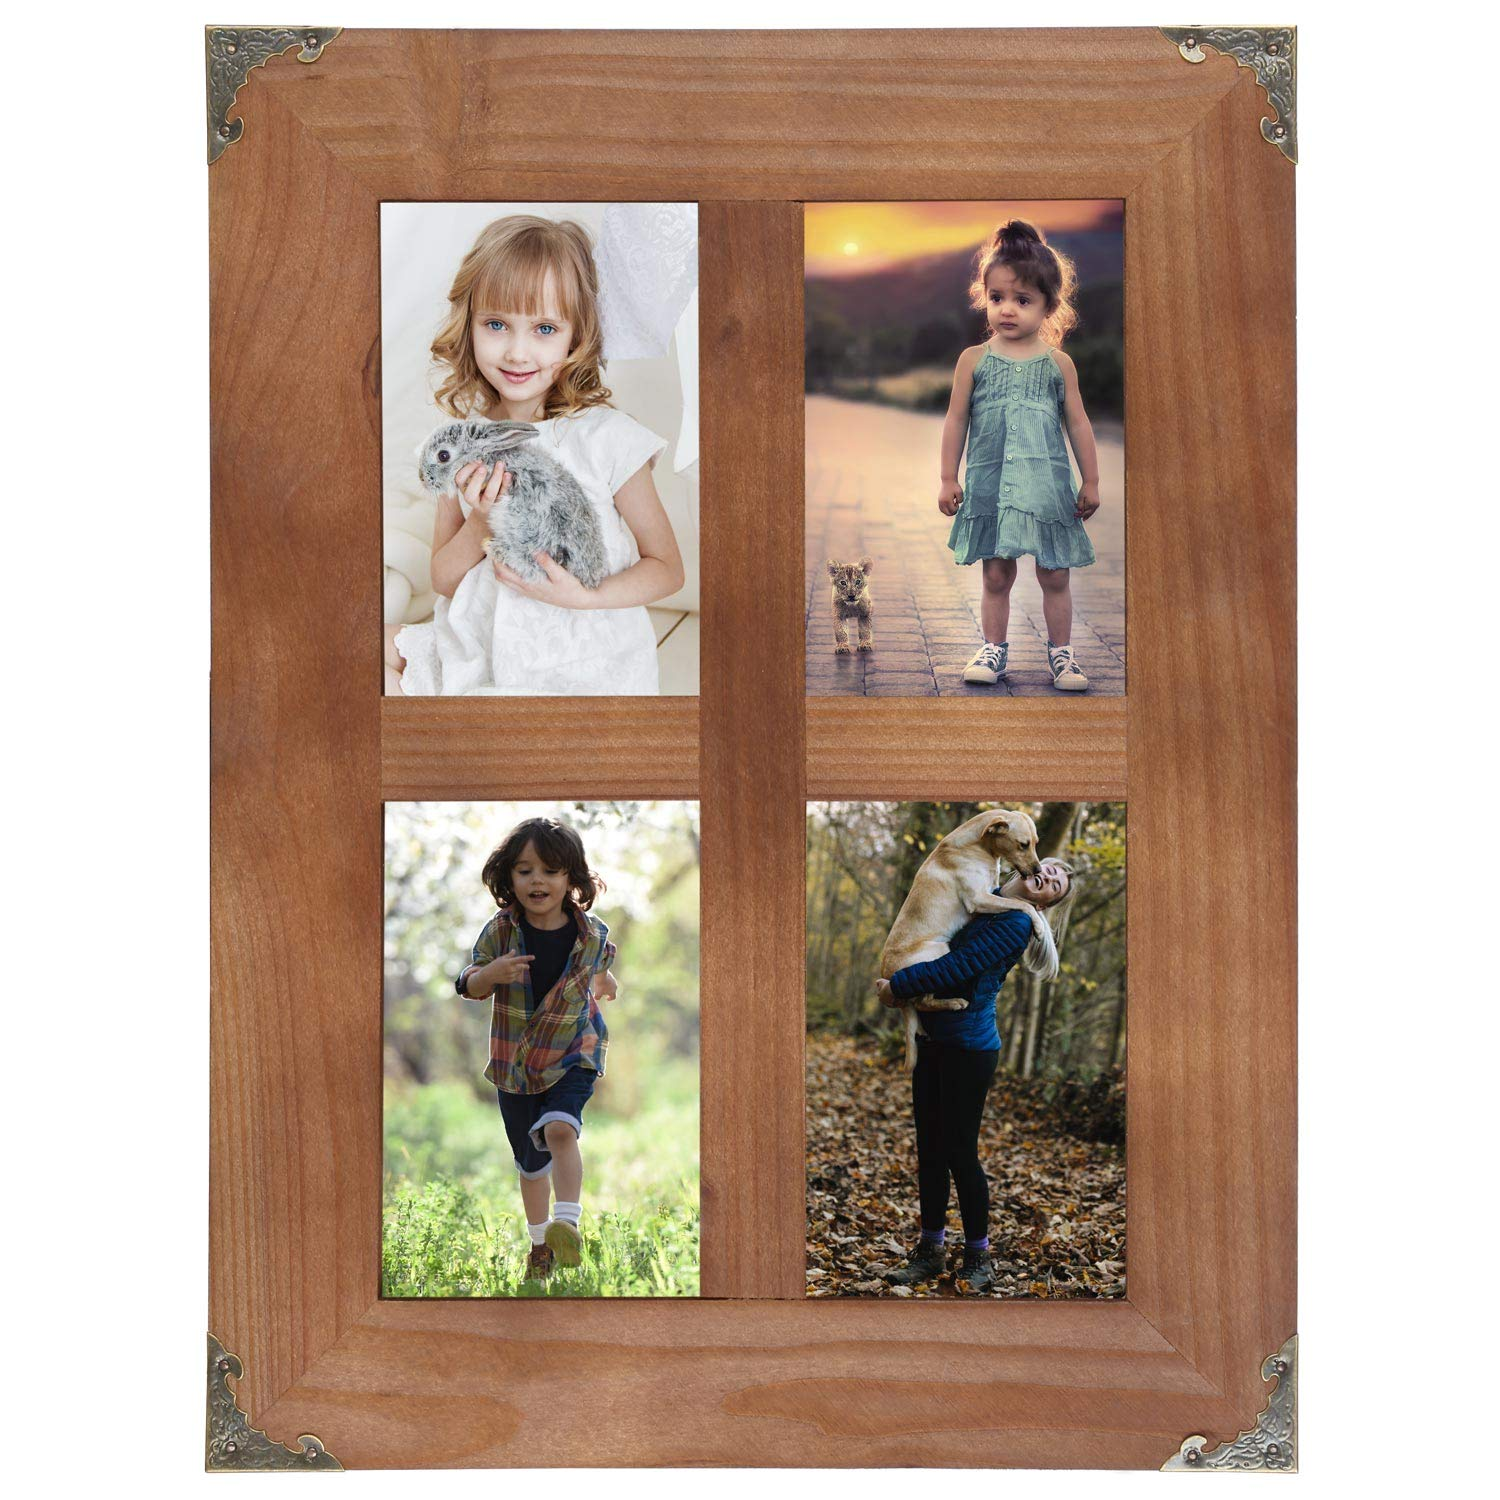 LOSOUR 4x6 picture frames collage, Window Pane 4 Opening 4x6 picture frame with Decorative Metal Corners for Table Top Display and Wall mounting Photo Frame (Brown, 16.2x12.2 inch)